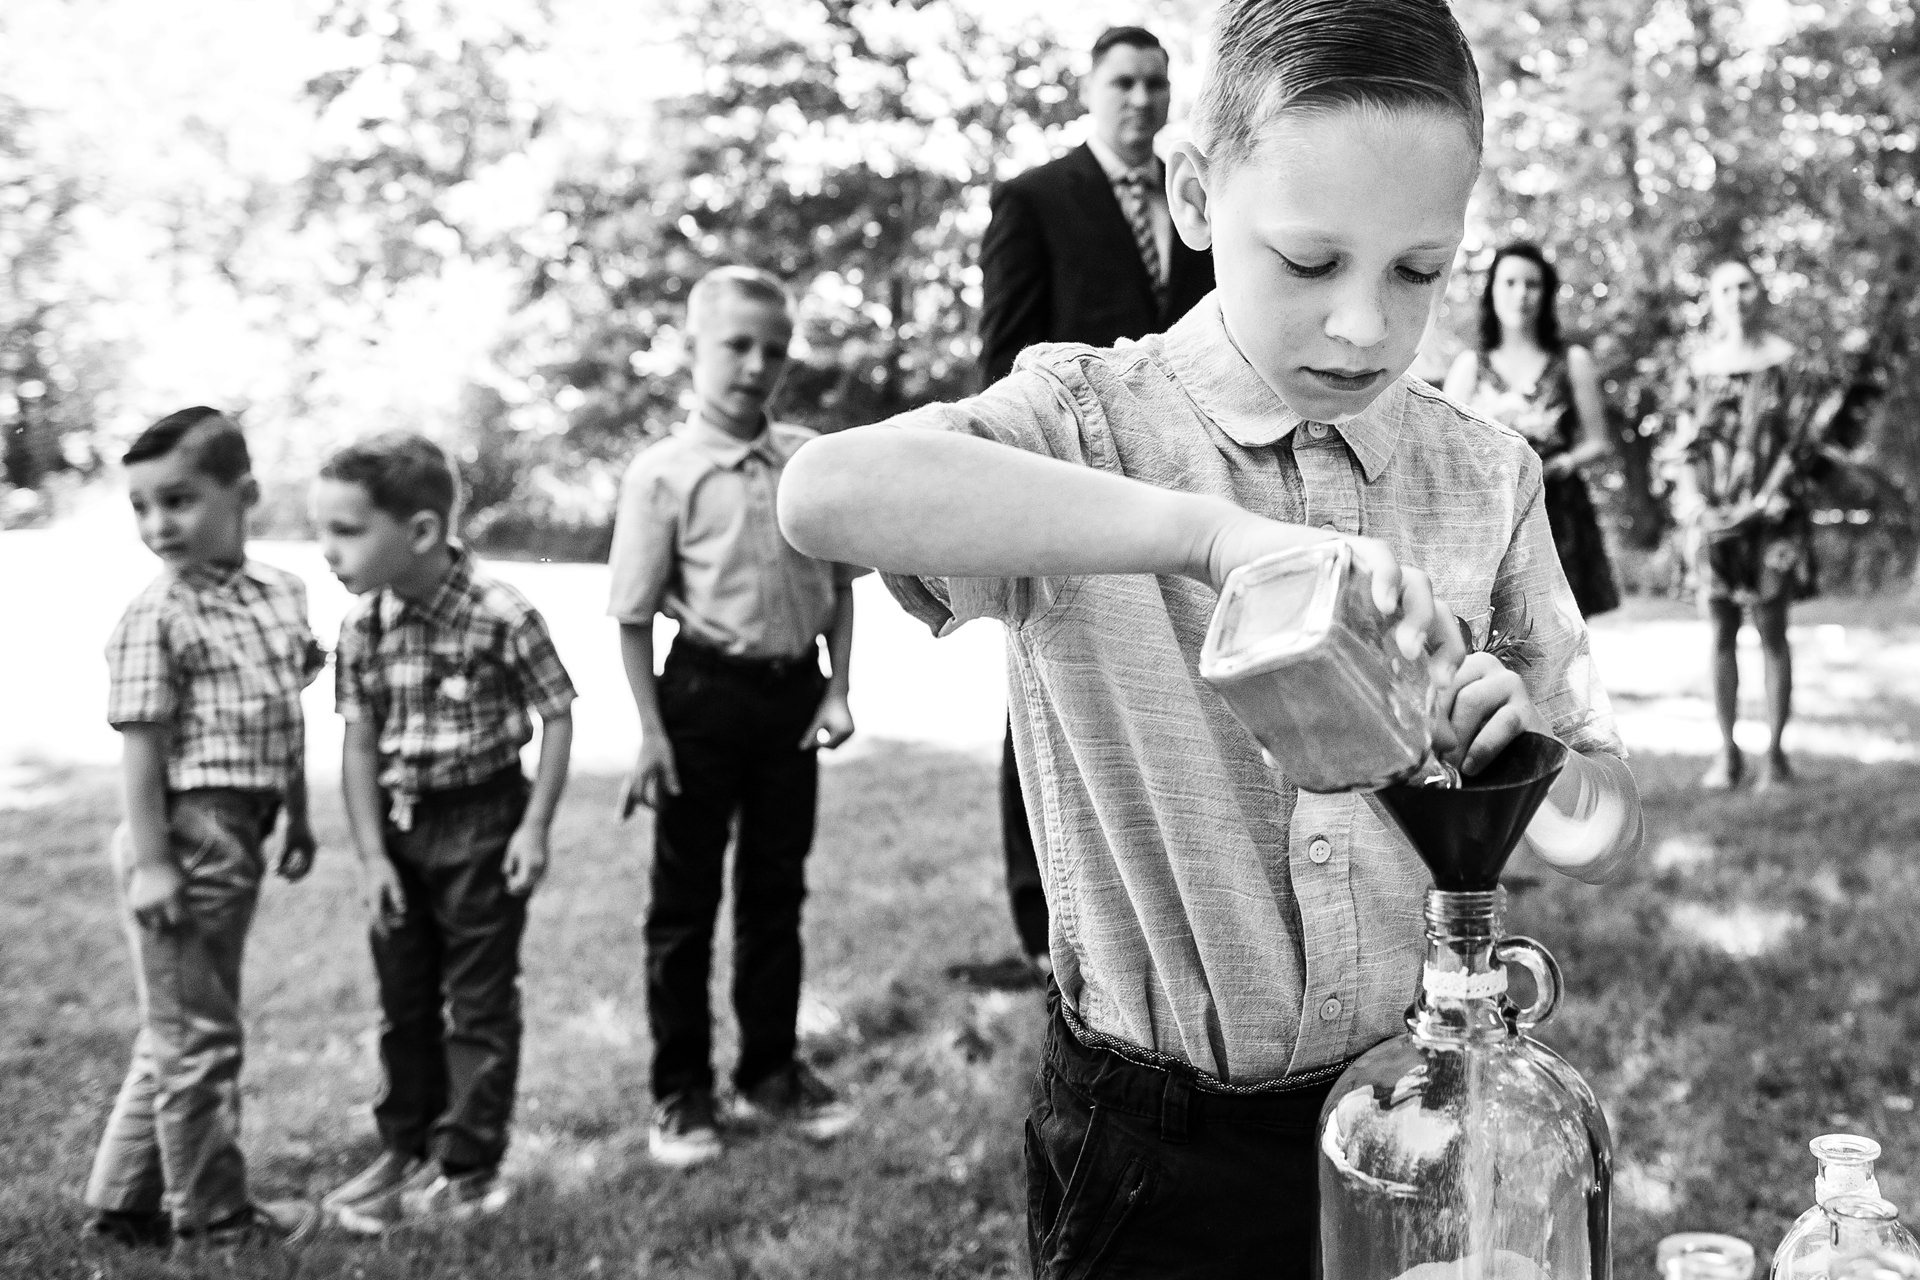 NJ Outdoor Elopement Ceremony Photographer   the boys couldn't help but be distracted by the sounds and sights of the backyard